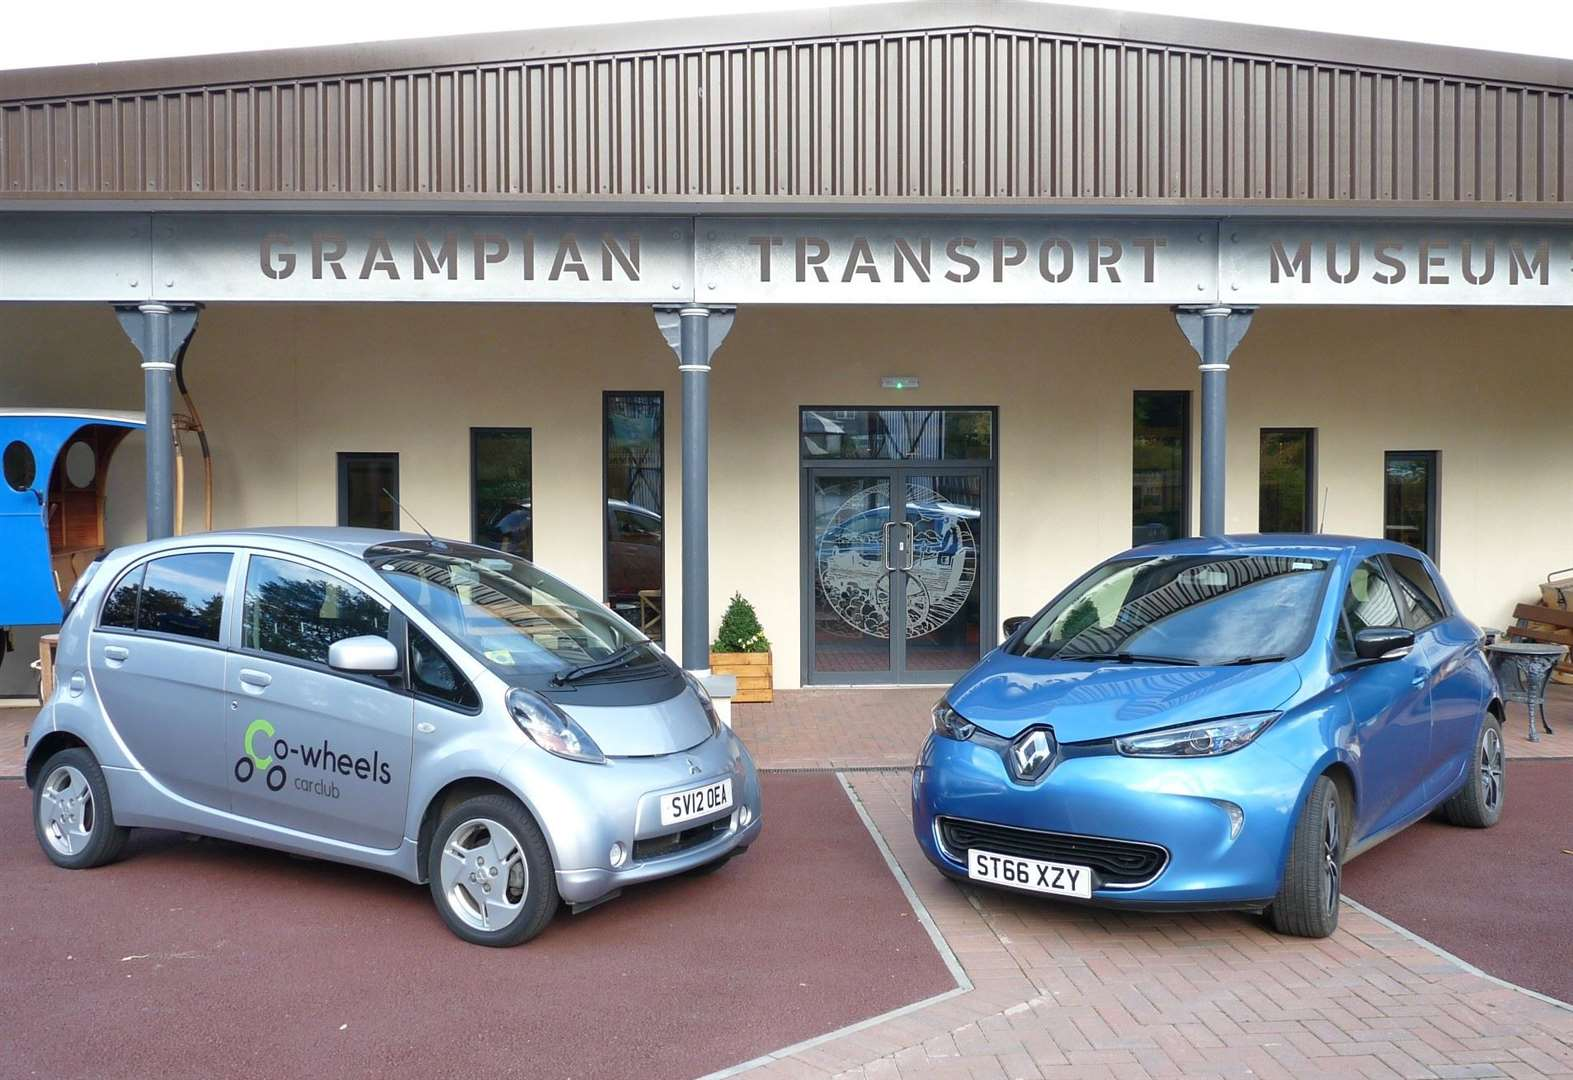 Museum Probes the Future with Electric Vehicle Expo